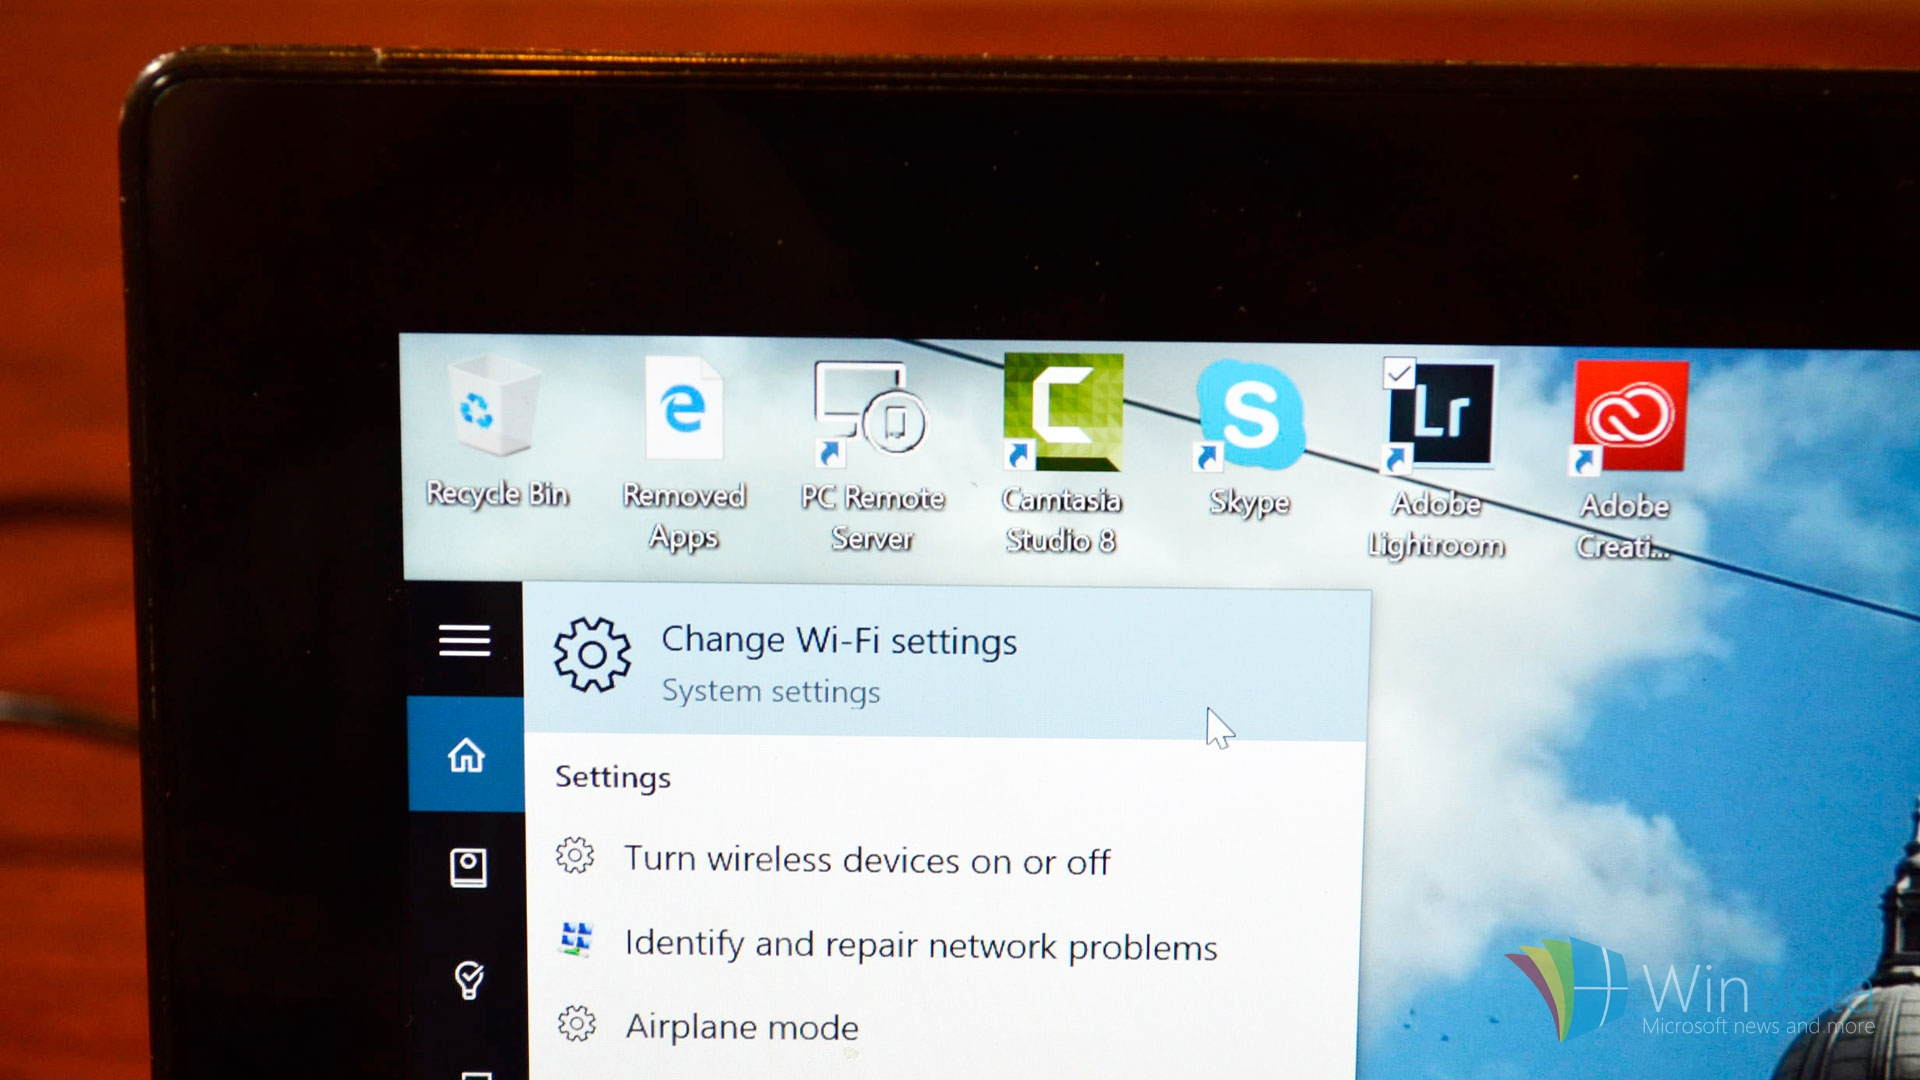 How to manage Wi-Fi in Windows 10 - PC Tech Magazine